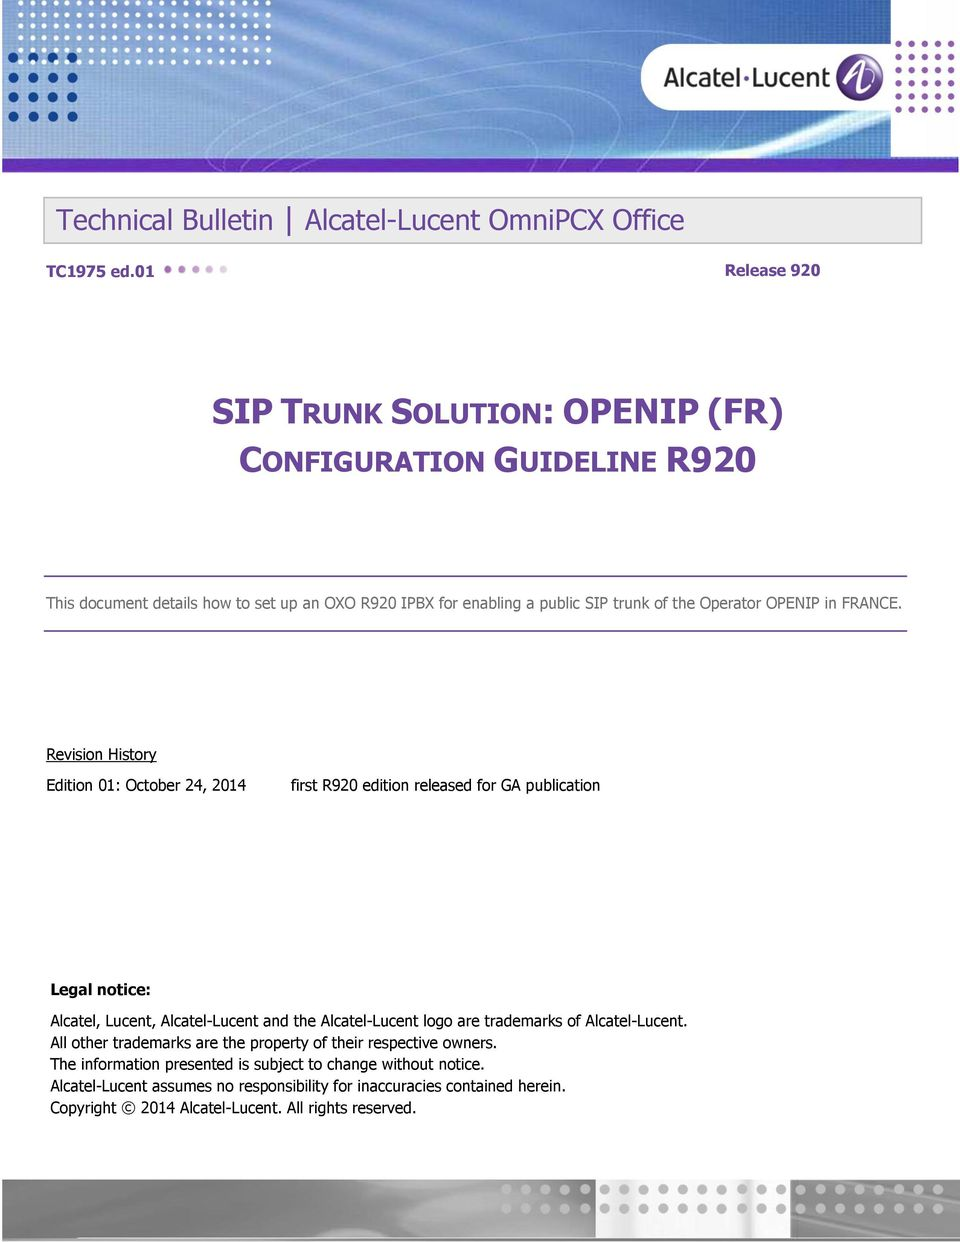 SIP TRUNK SOLUTION: OPENIP (FR) CONFIGURATION GUIDELINE R920 - PDF